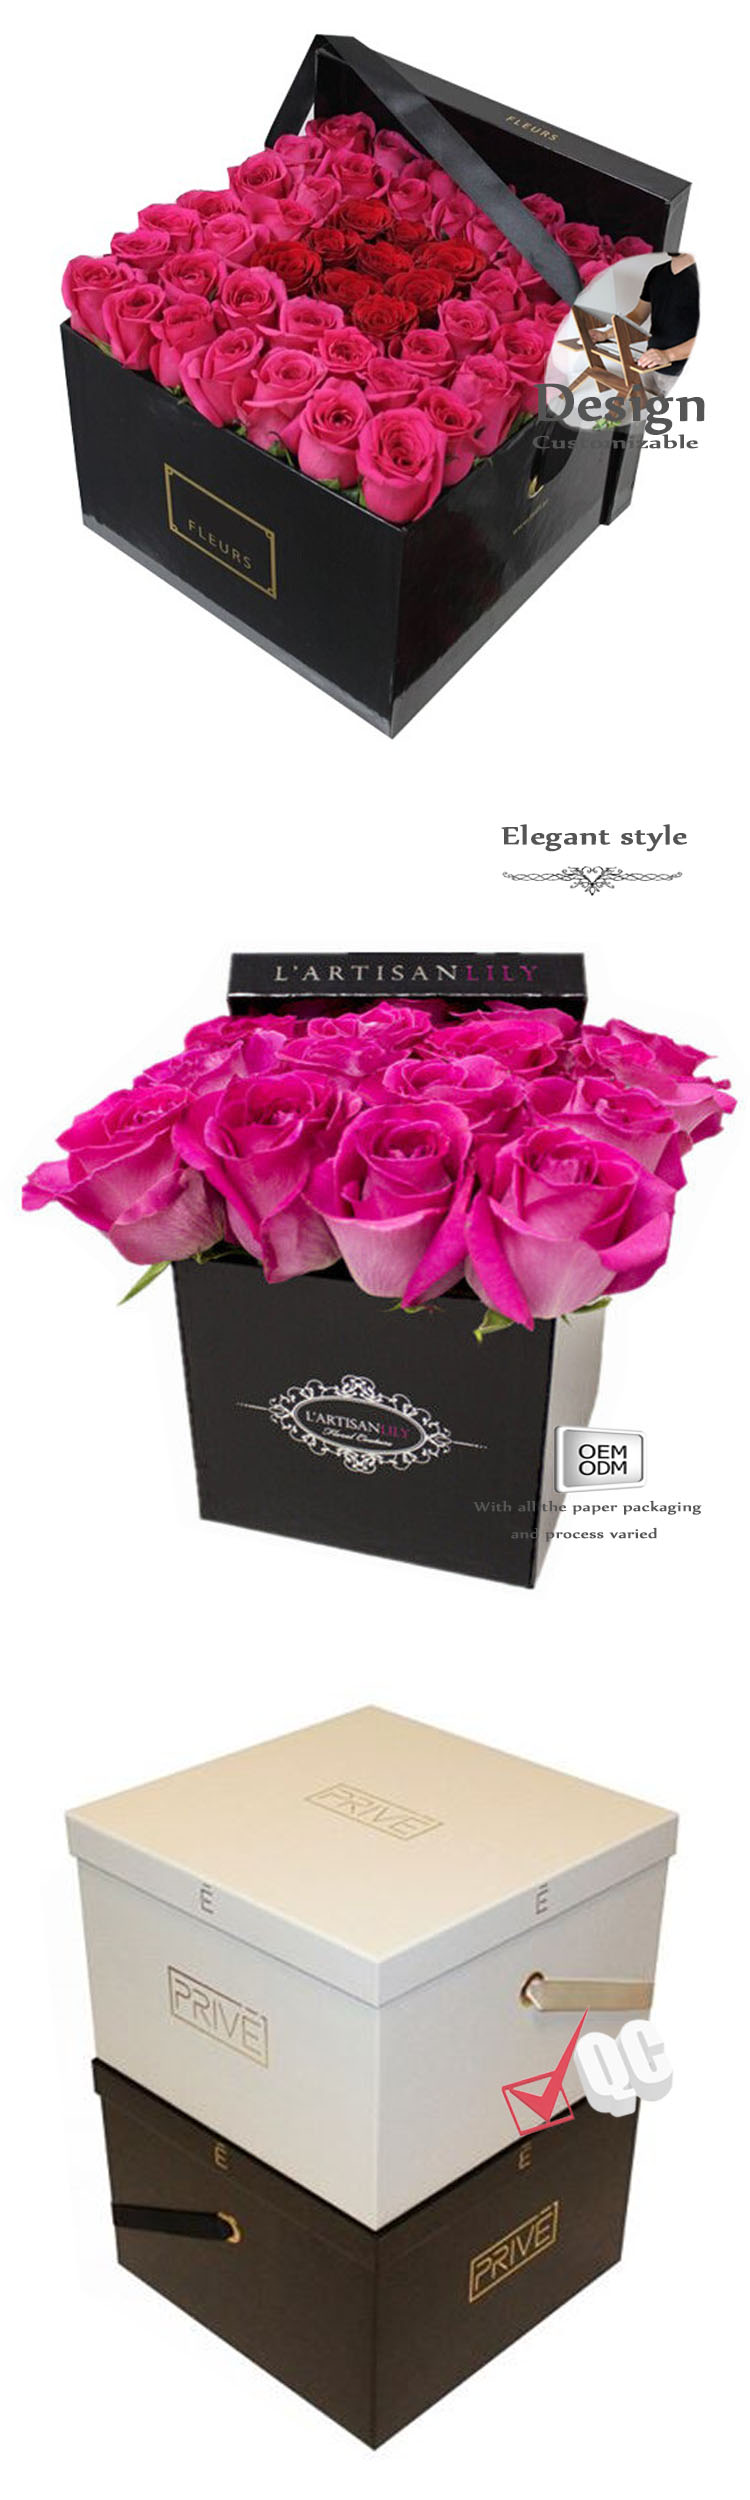 Square flower gift boxes